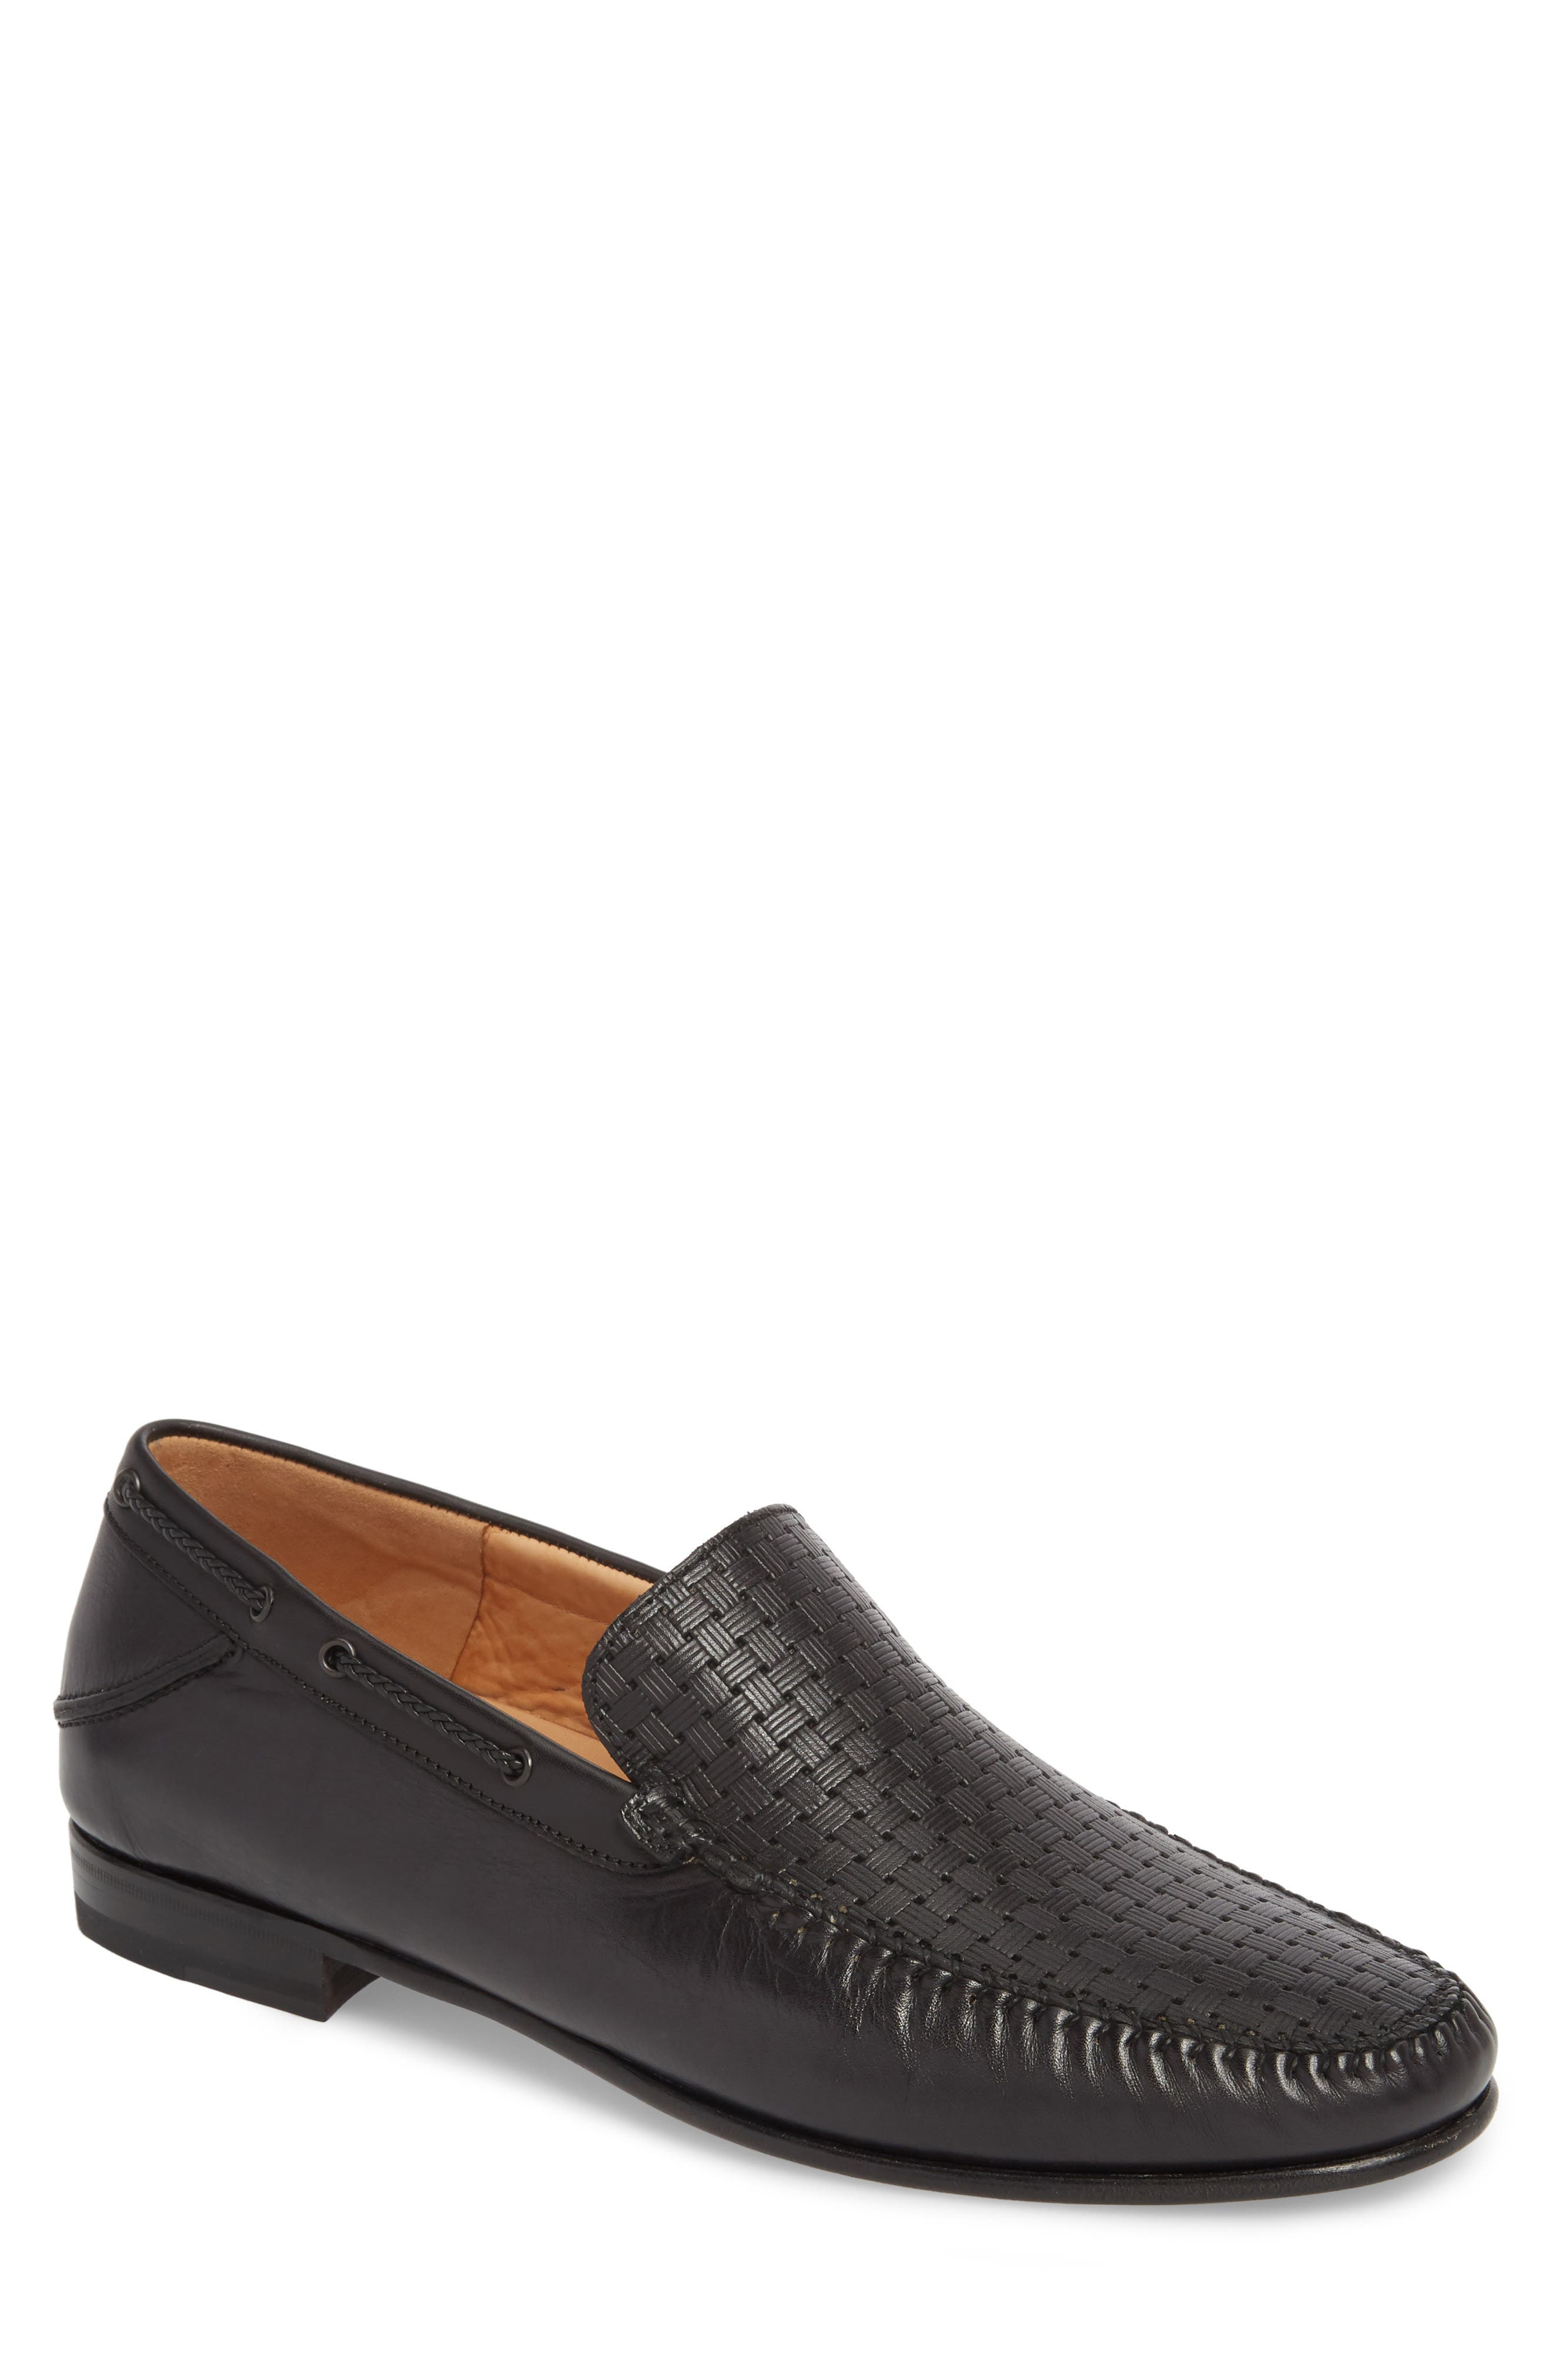 Jano Embossed Moc-Toe Loafer,                         Main,                         color, BLACK LEATHER